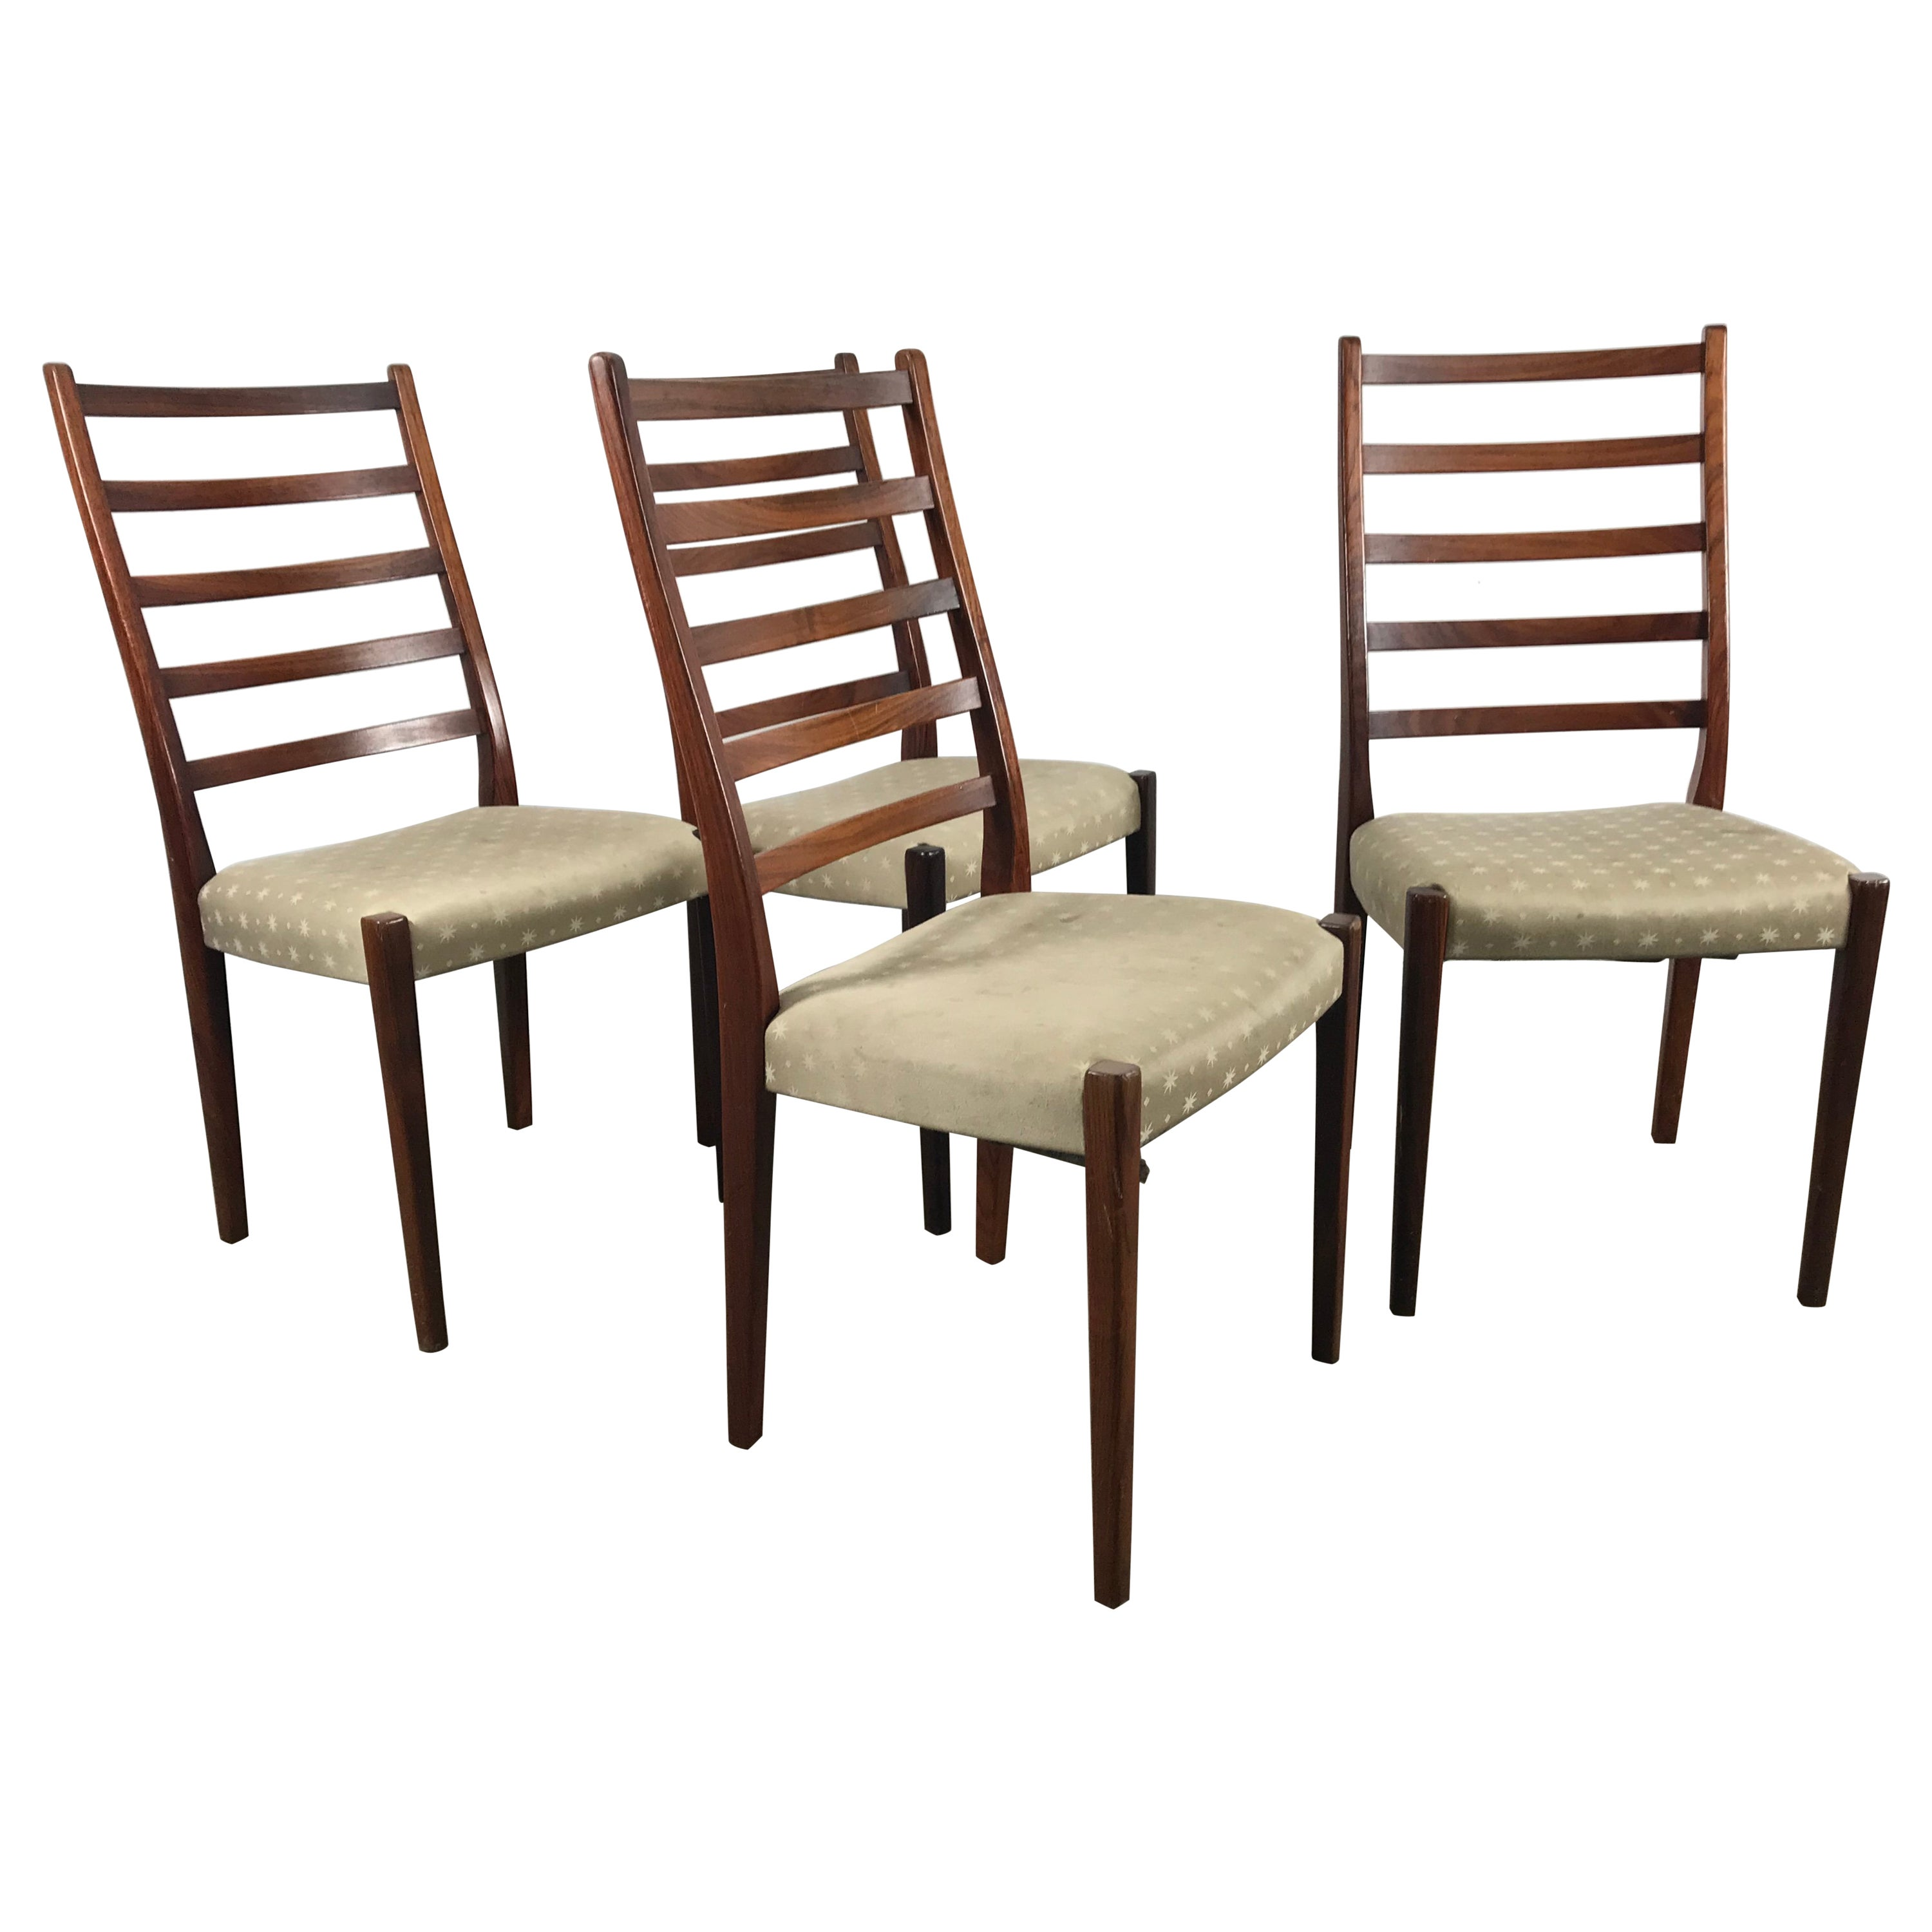 Set of Four Rosewood Dining Chairs by Svegards Markaryd, Sweden